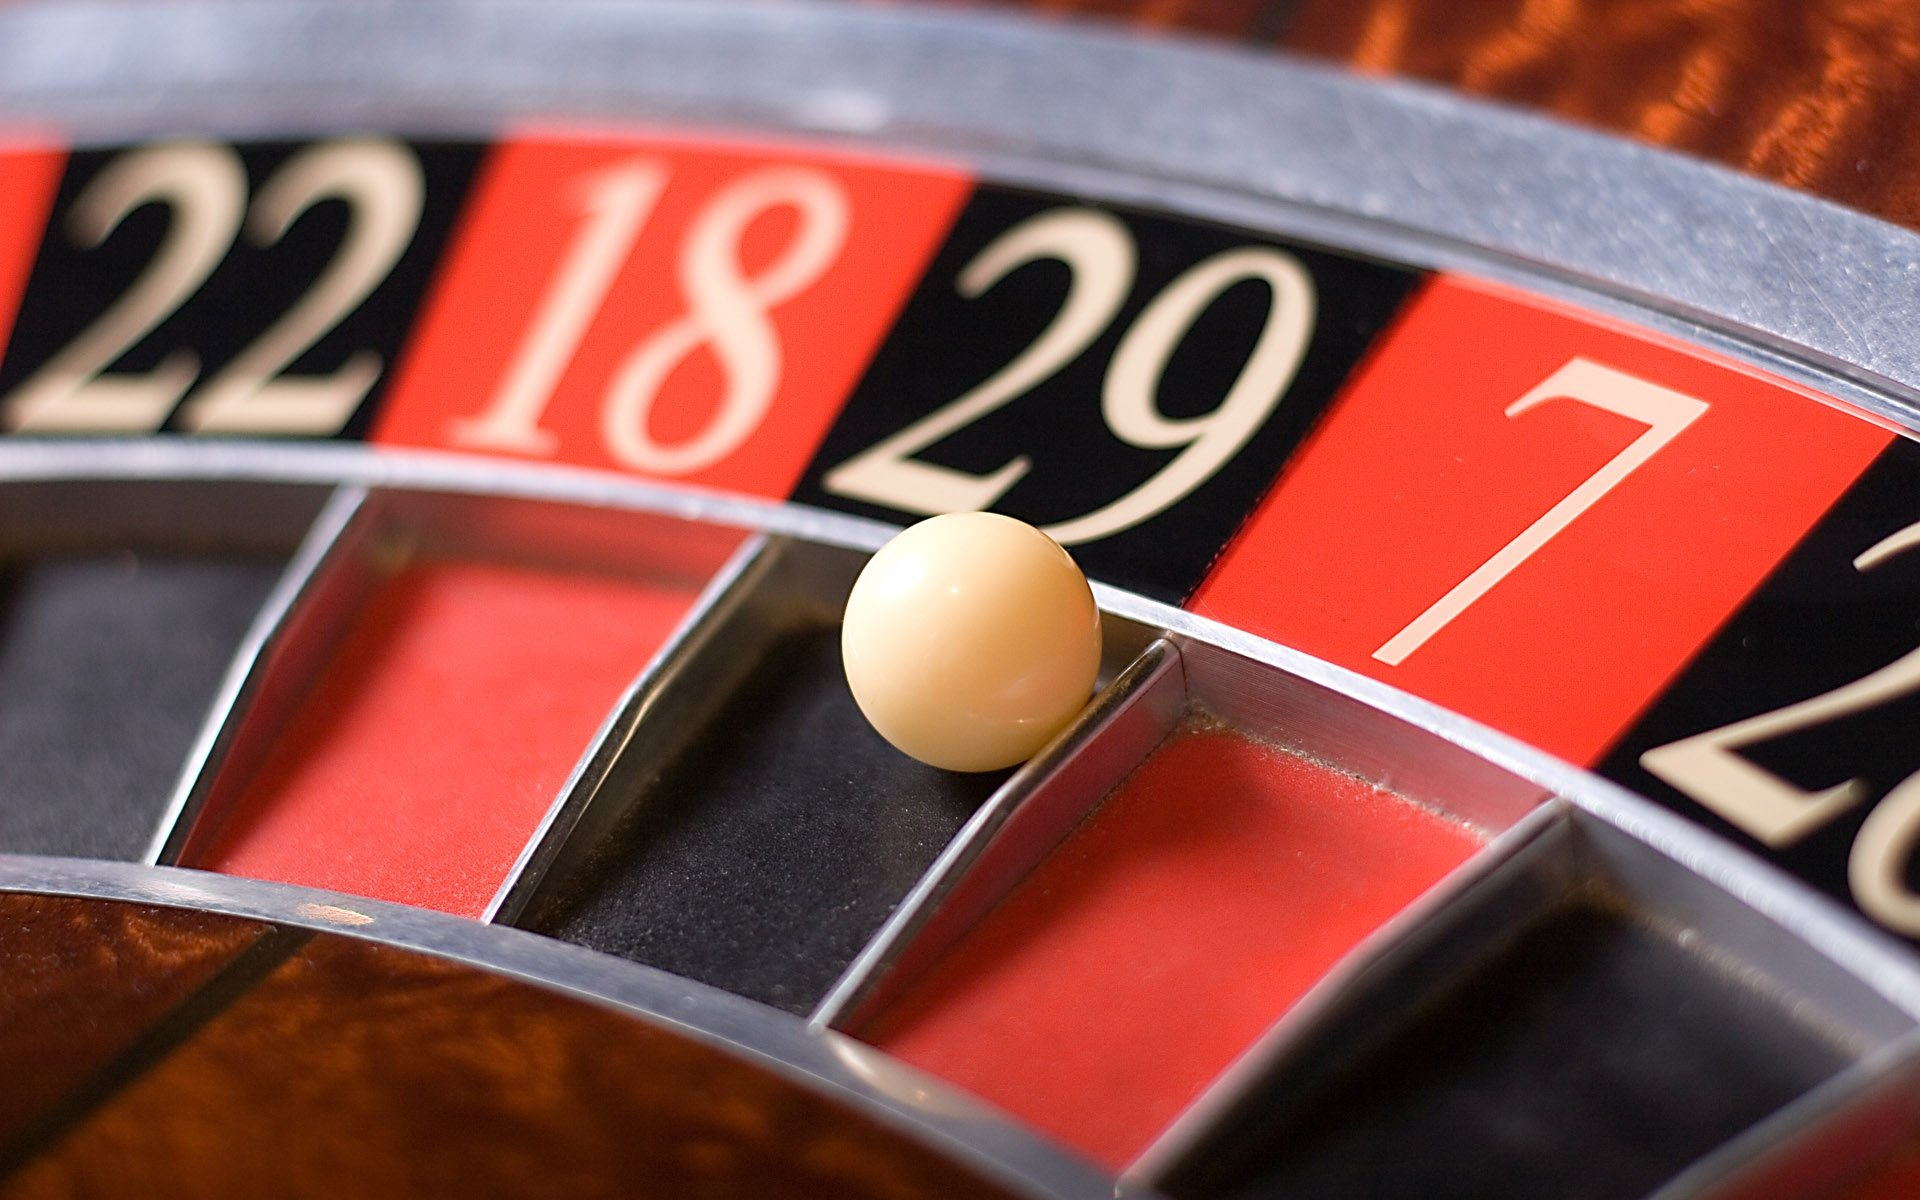 Enjoy the best online lottery games that sagame168 has!